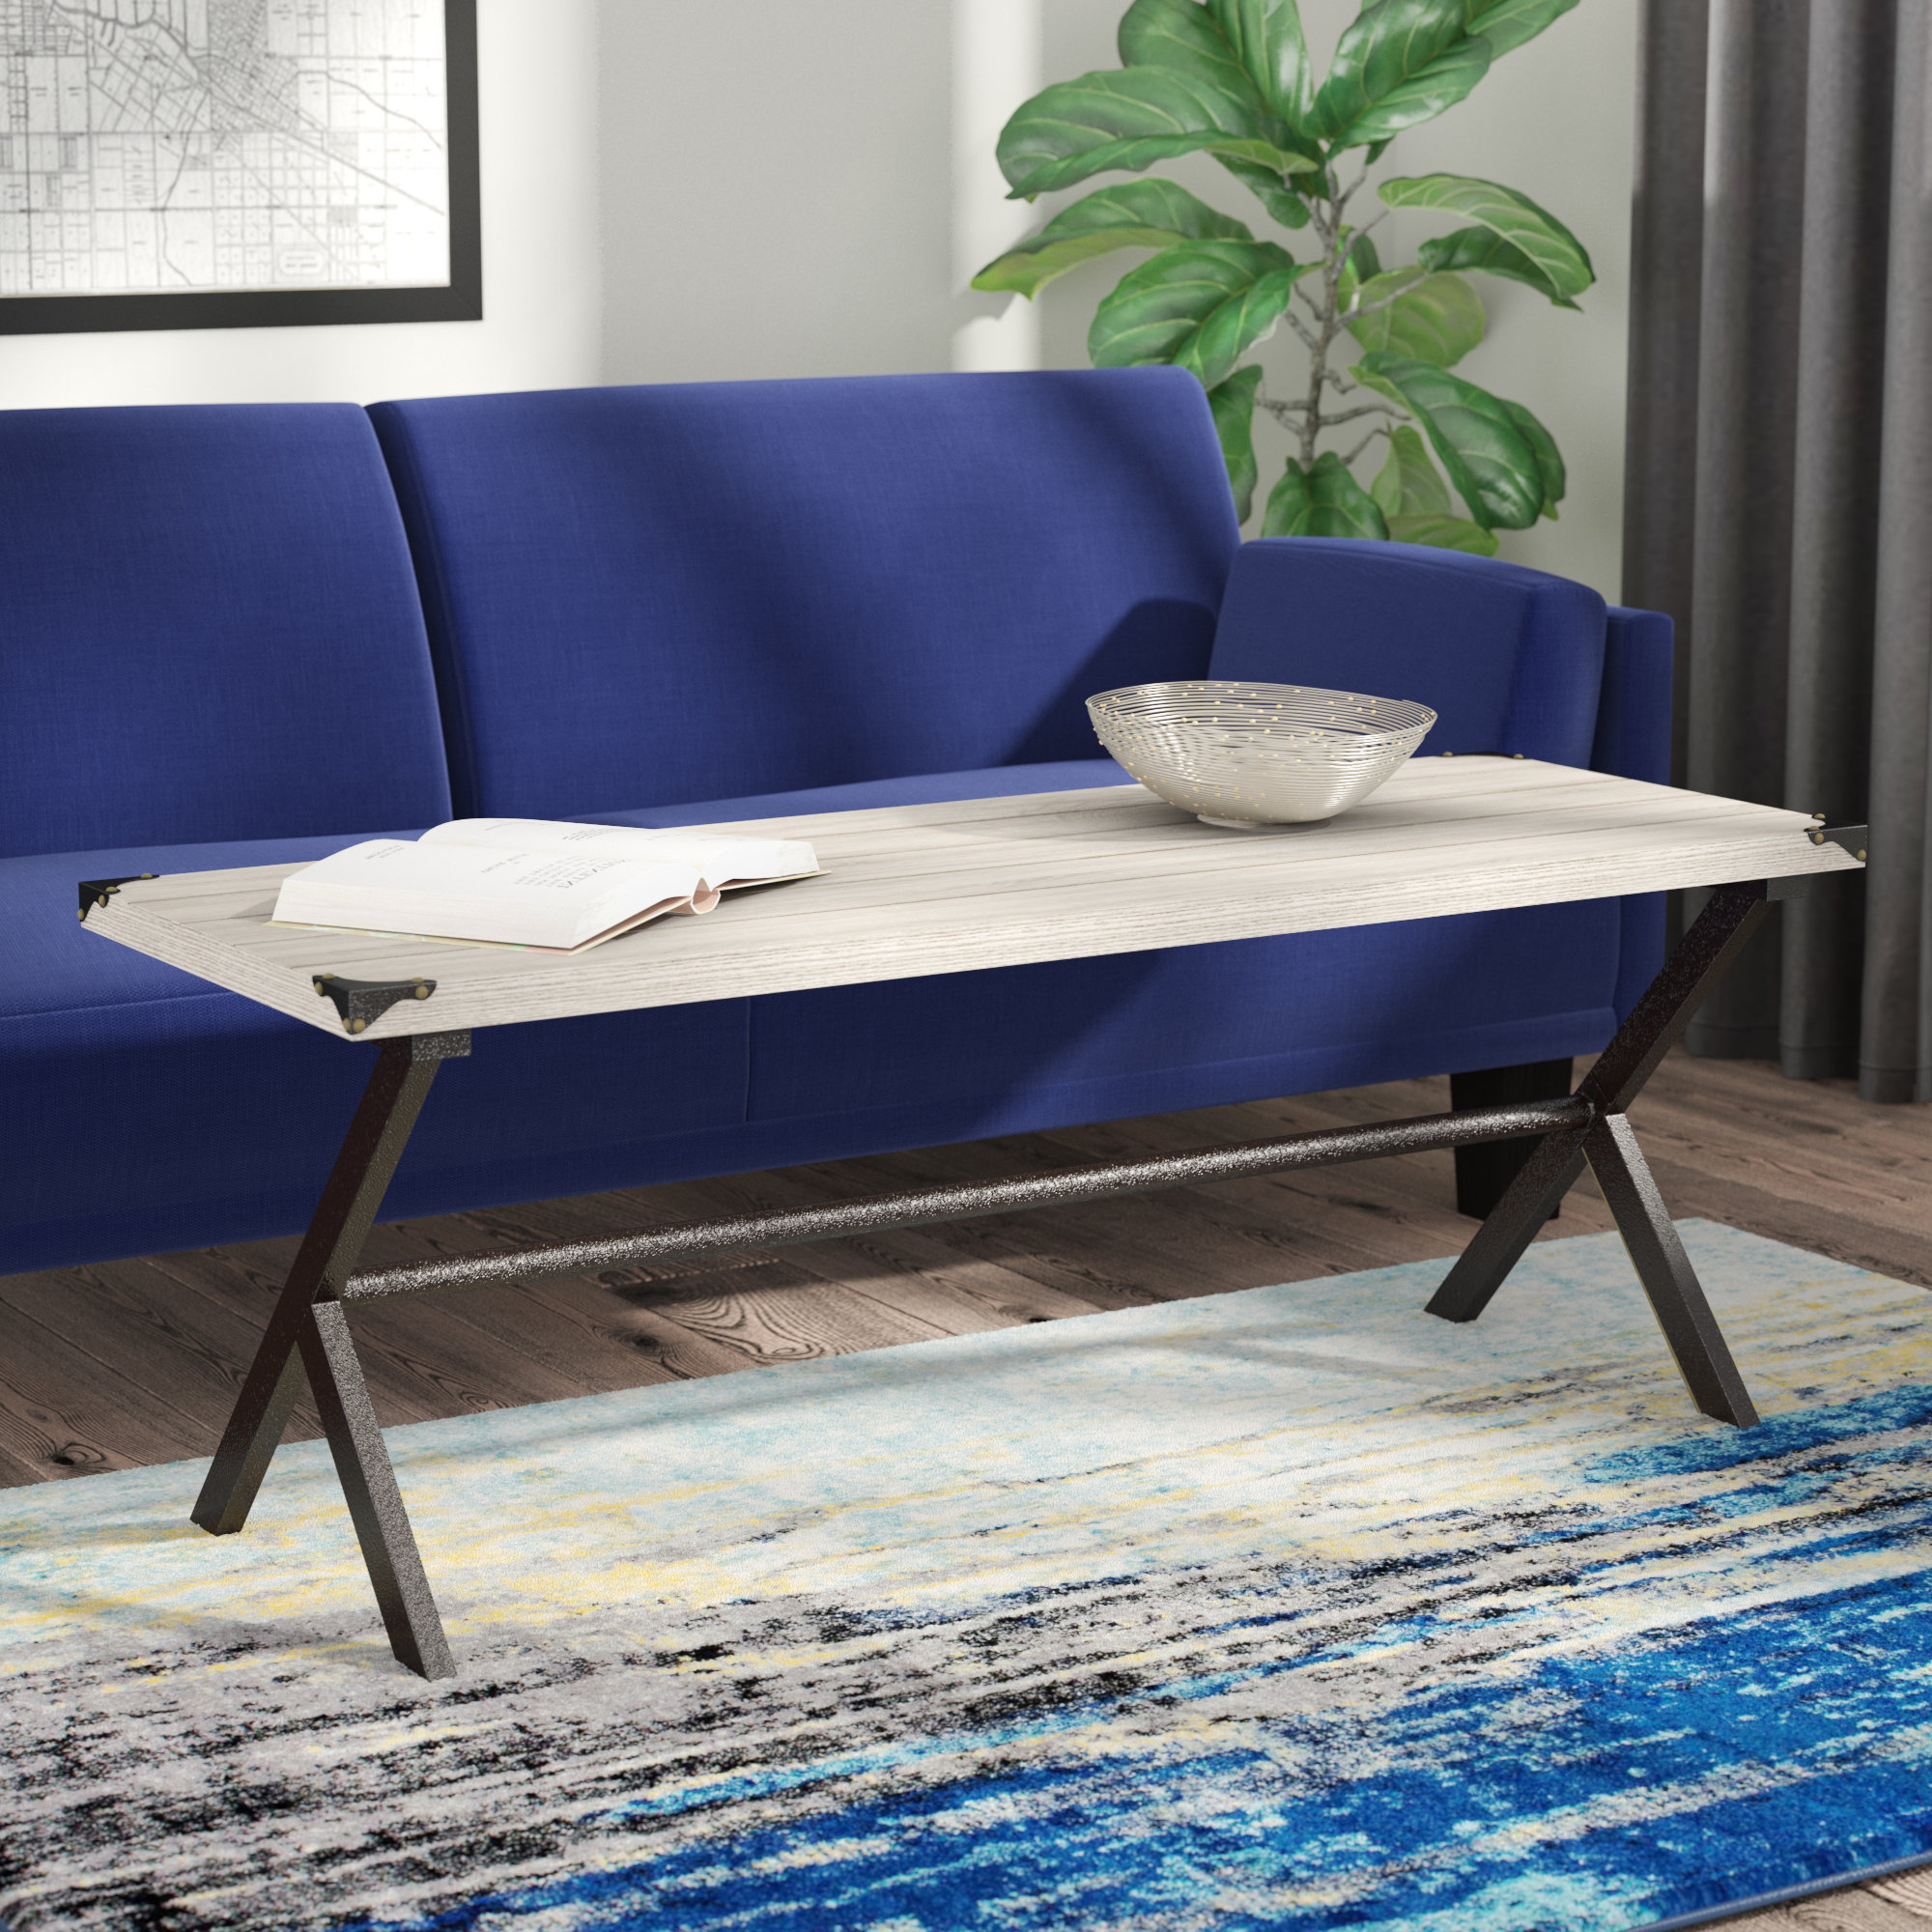 Trent Austin Design Kyra Coffee Table & Reviews | Wayfair With Kyra Console Tables (Gallery 15 of 20)